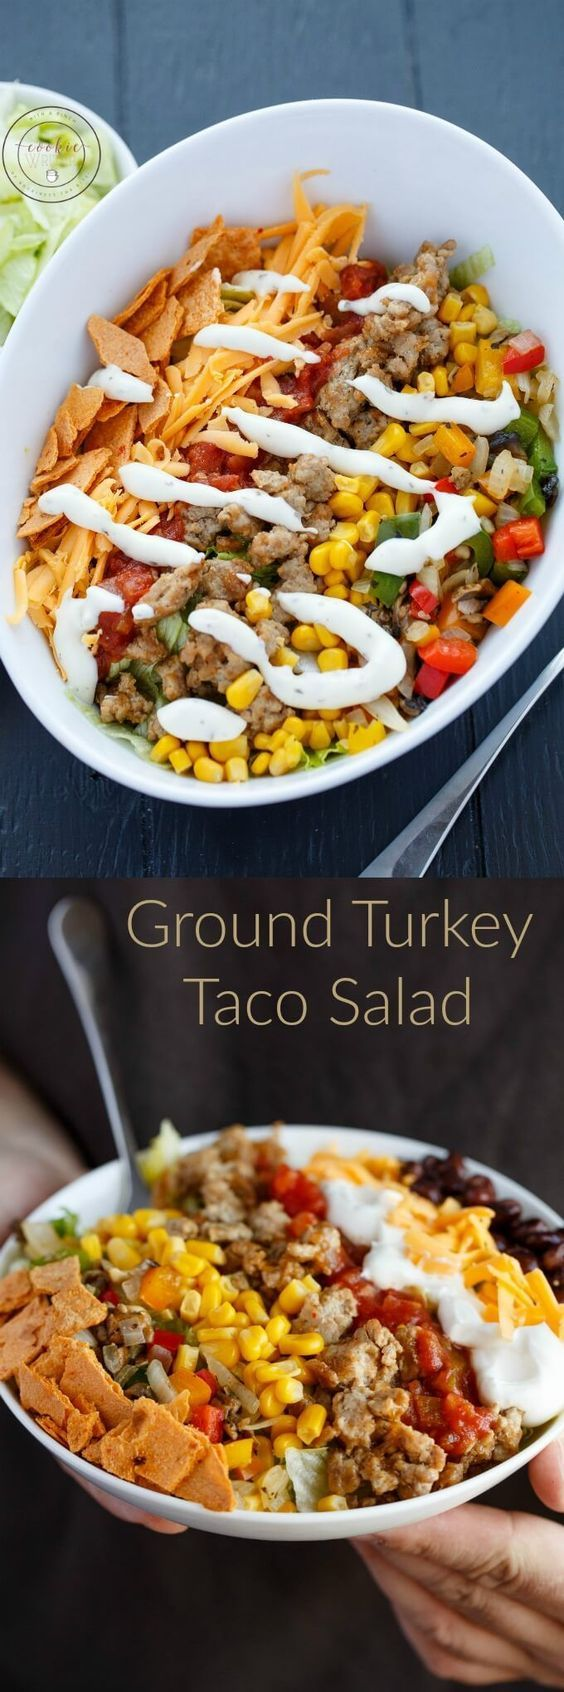 Ground Turkey Taco Salad | @thecookiewriter | #salad | A healthy lunch for the office or back to school (and this taco salad is easily customized to your liking!):